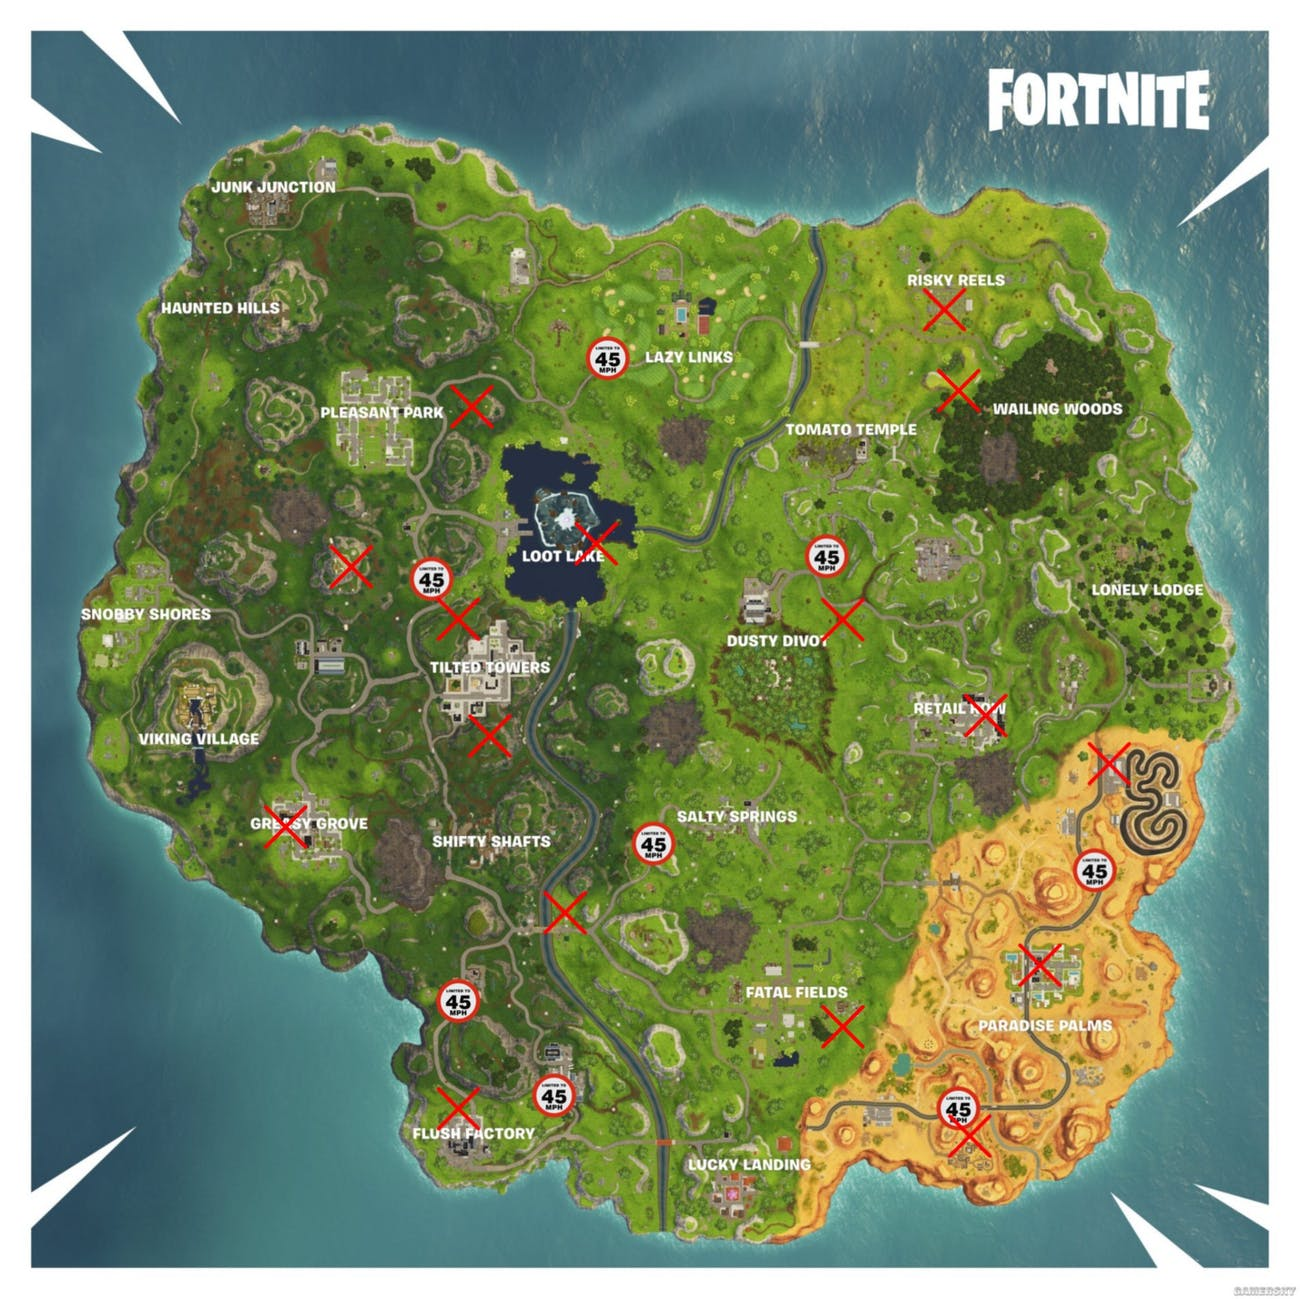 Fortnite' Radar Signs Locations Map: Where to Speed by Them for Week